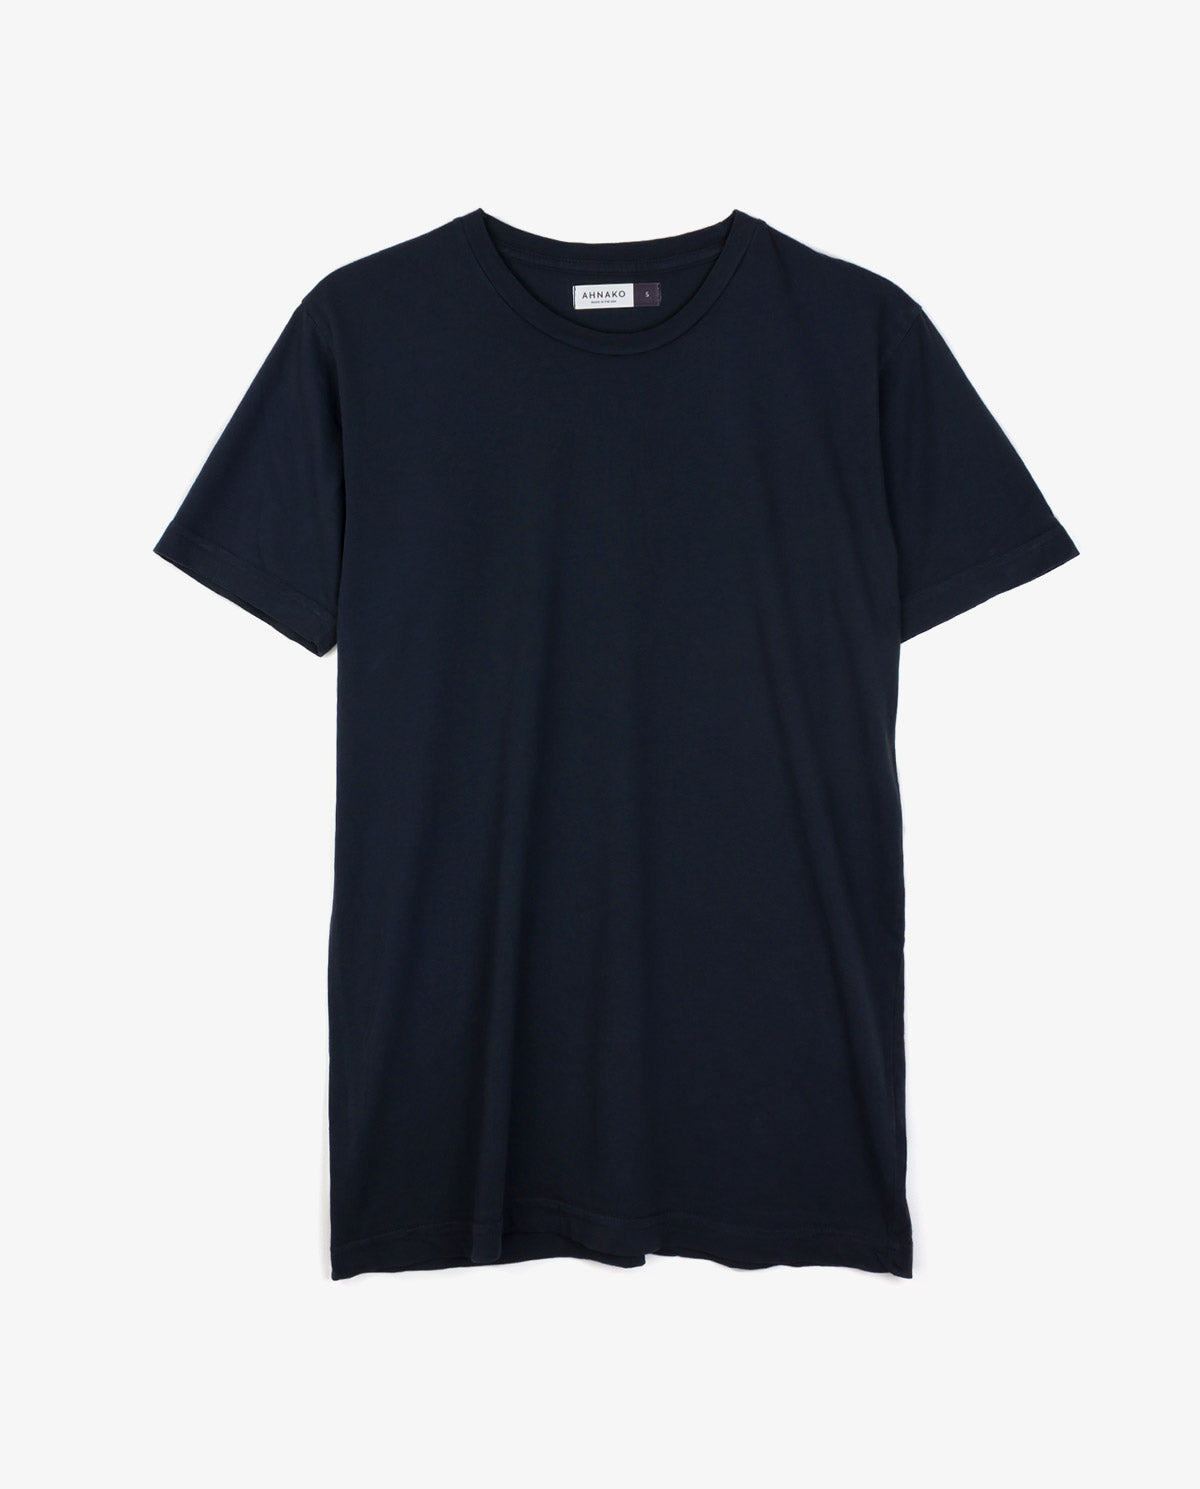 Ahnako Basic Tee Shirt - Vintage Black